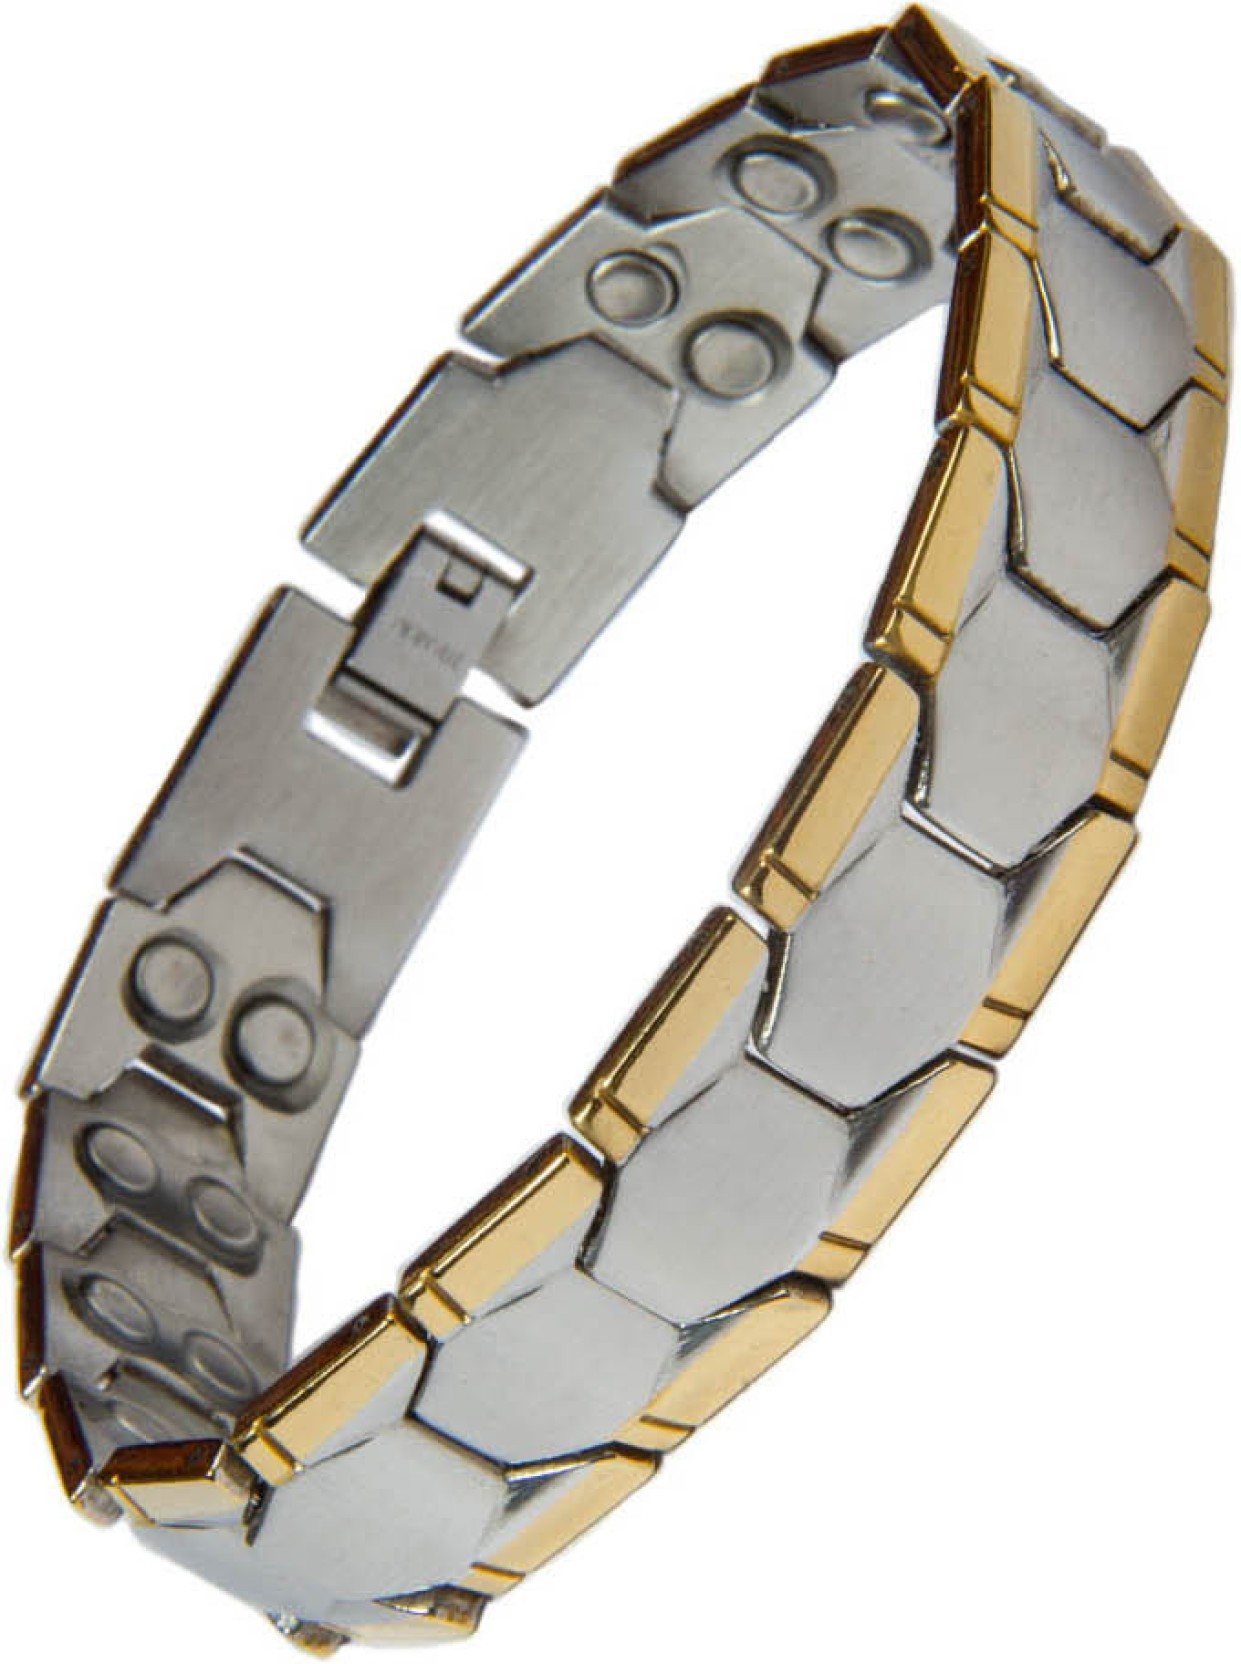 Aarogyam Energy Jewellery Stainless Steel Bracelet Price In India Saklar On Of Lg Add To Cart